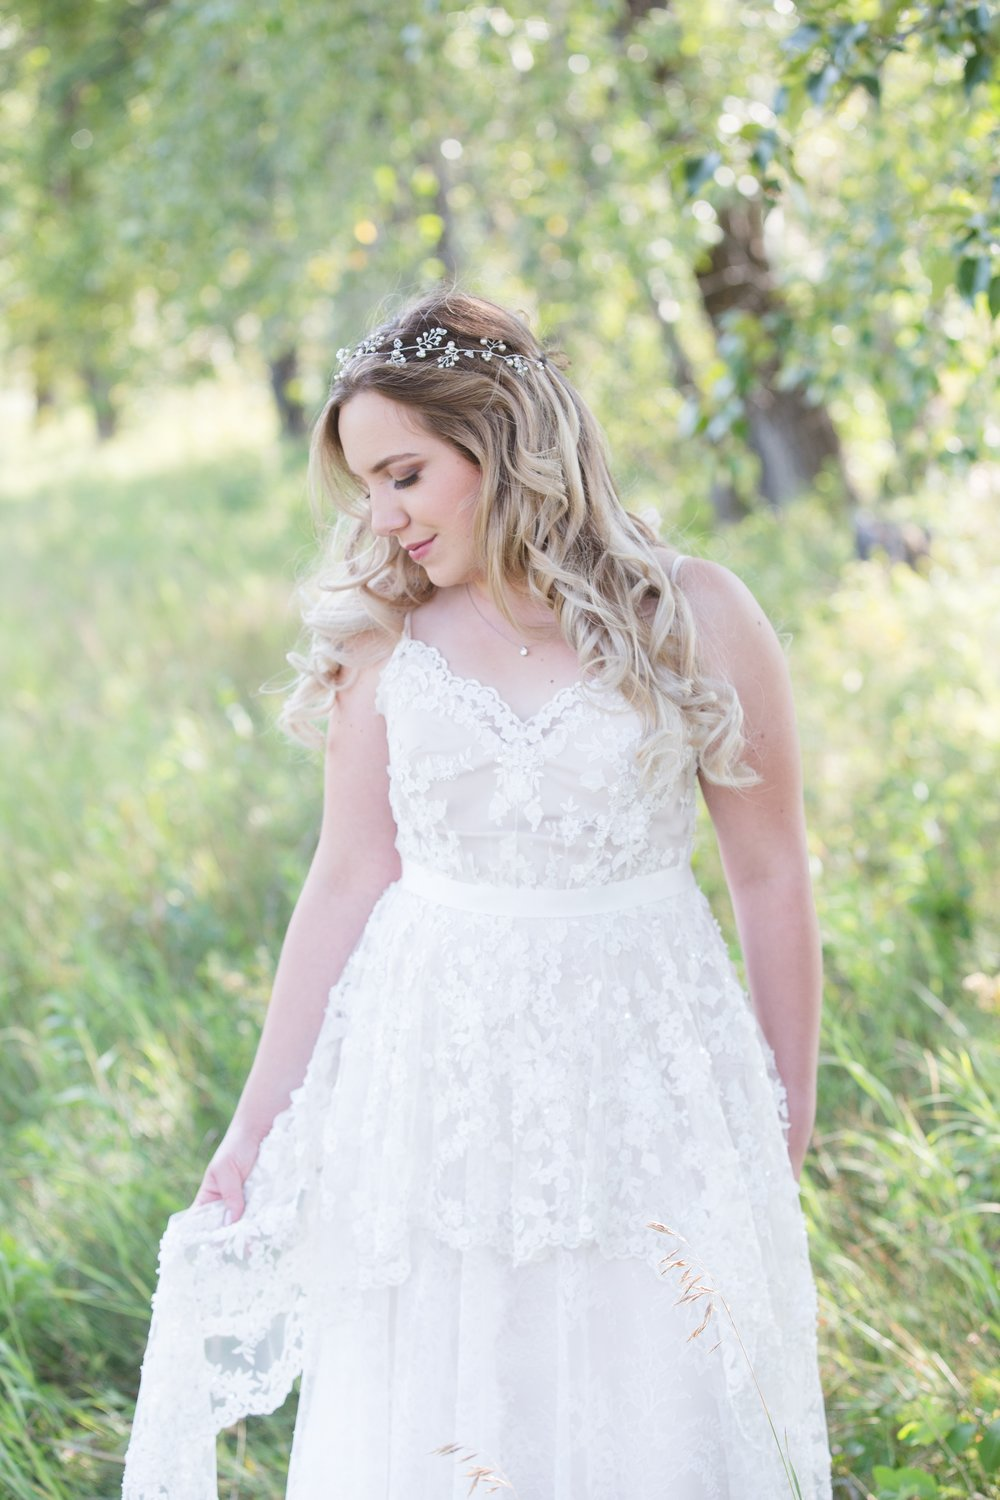 Fish Creek Park Wedding Photography in Calgary